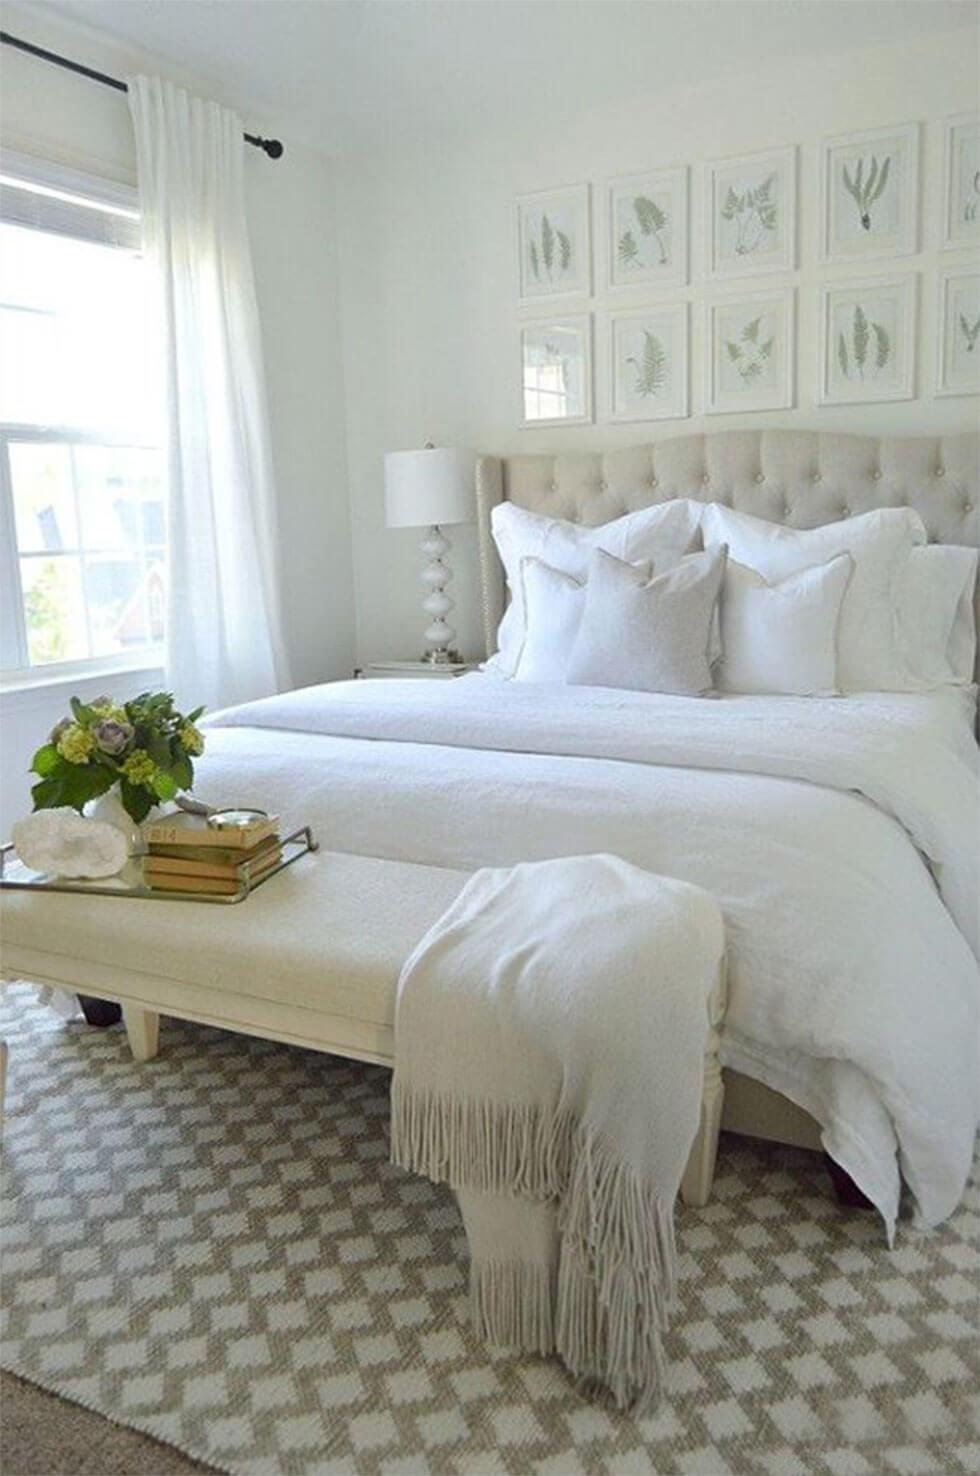 All-white bedroom with tufted headboard, linen bedding and upholstered bench.